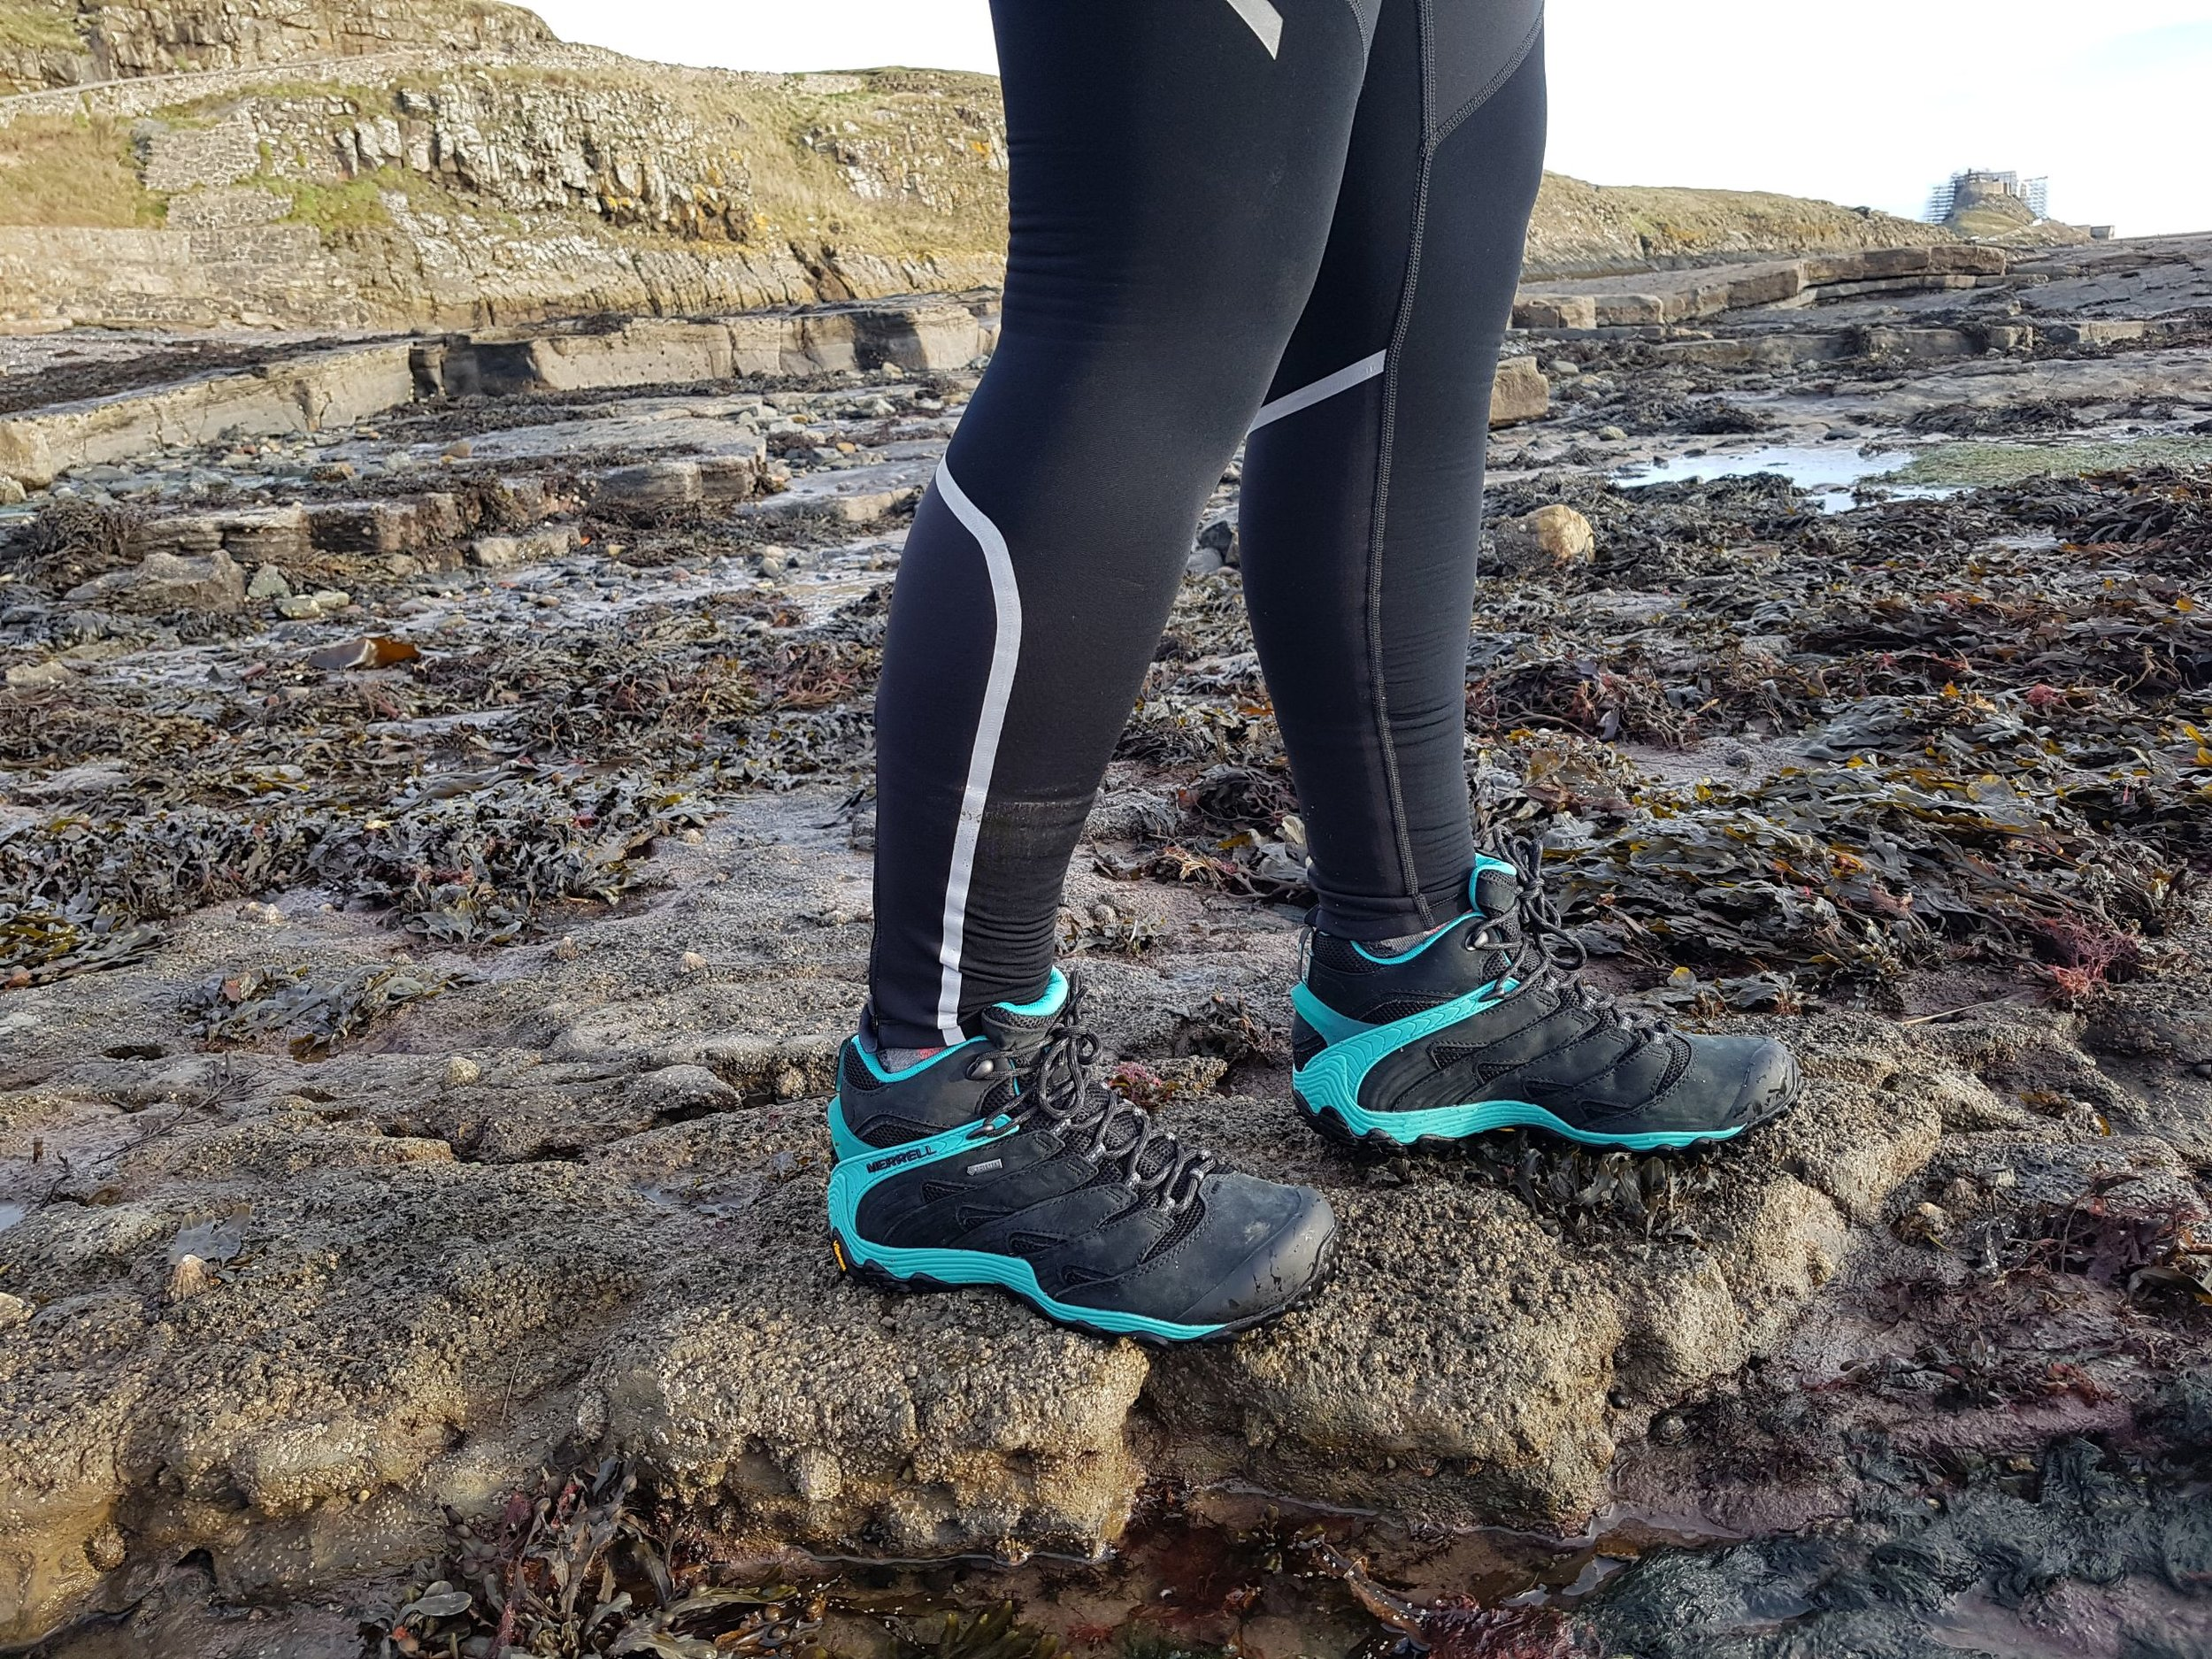 Testing the Merrell Chameleon 7 Mid Gore Tex on the beach on Holy Island